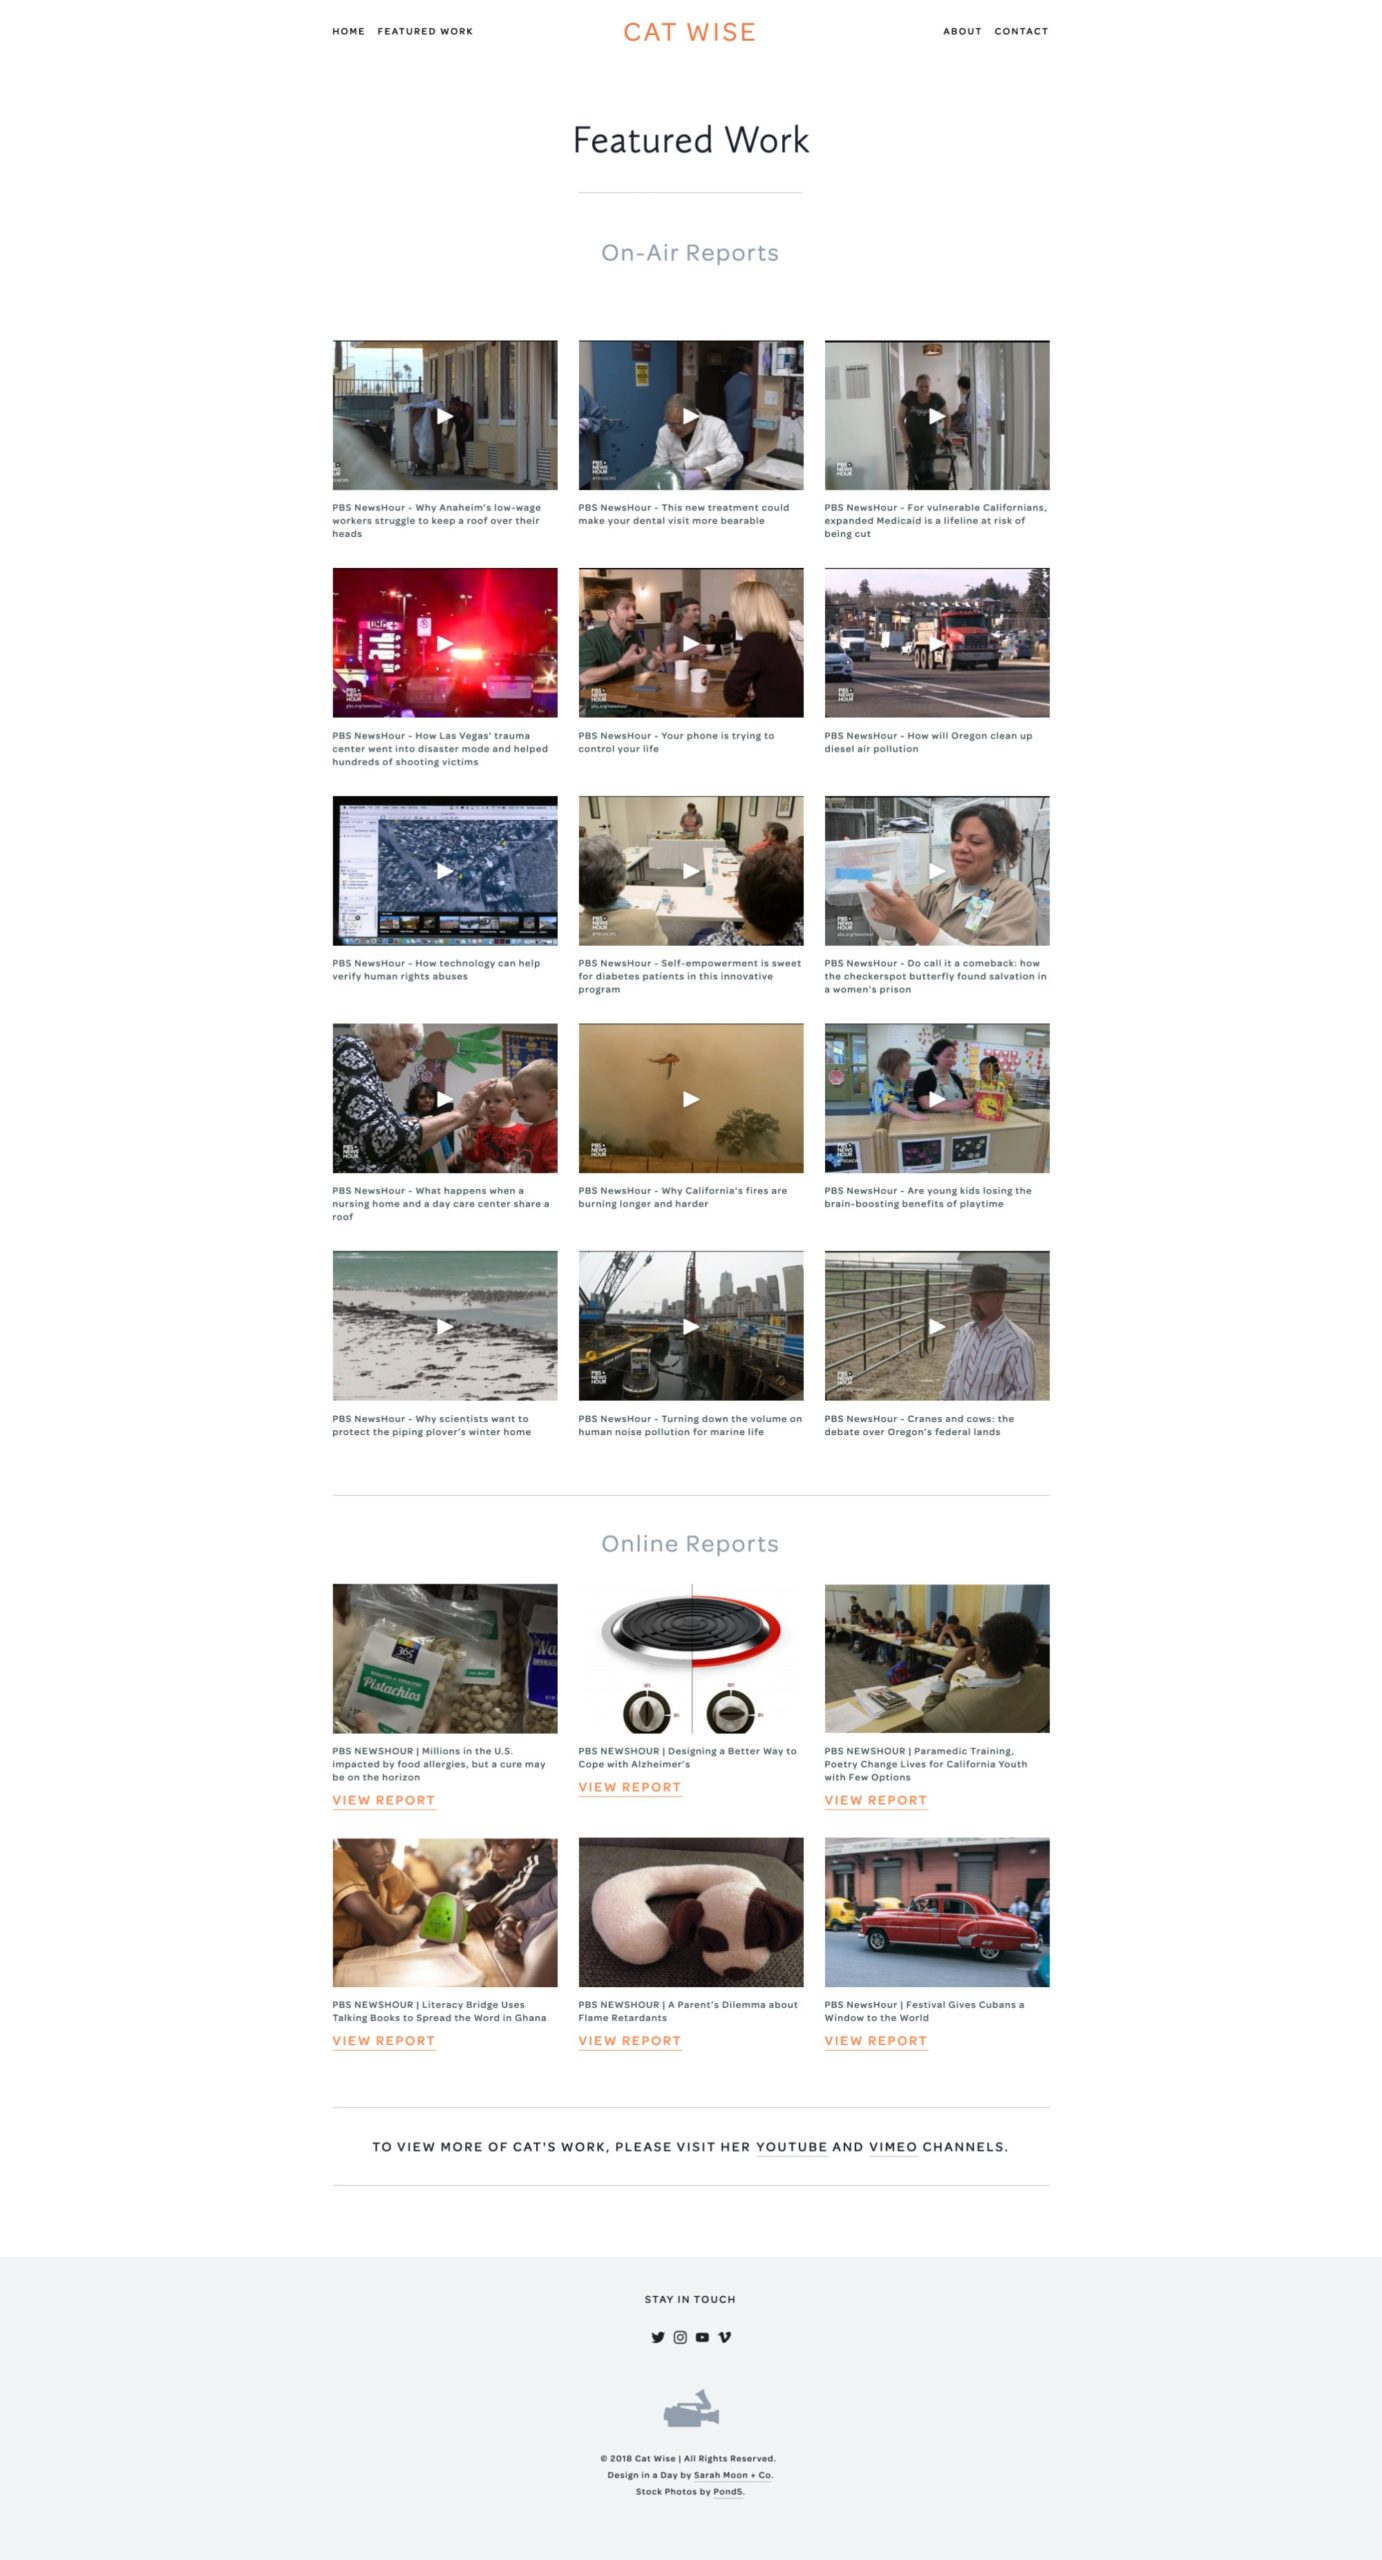 Cat Wise Television Producer One Day Website Featured Work